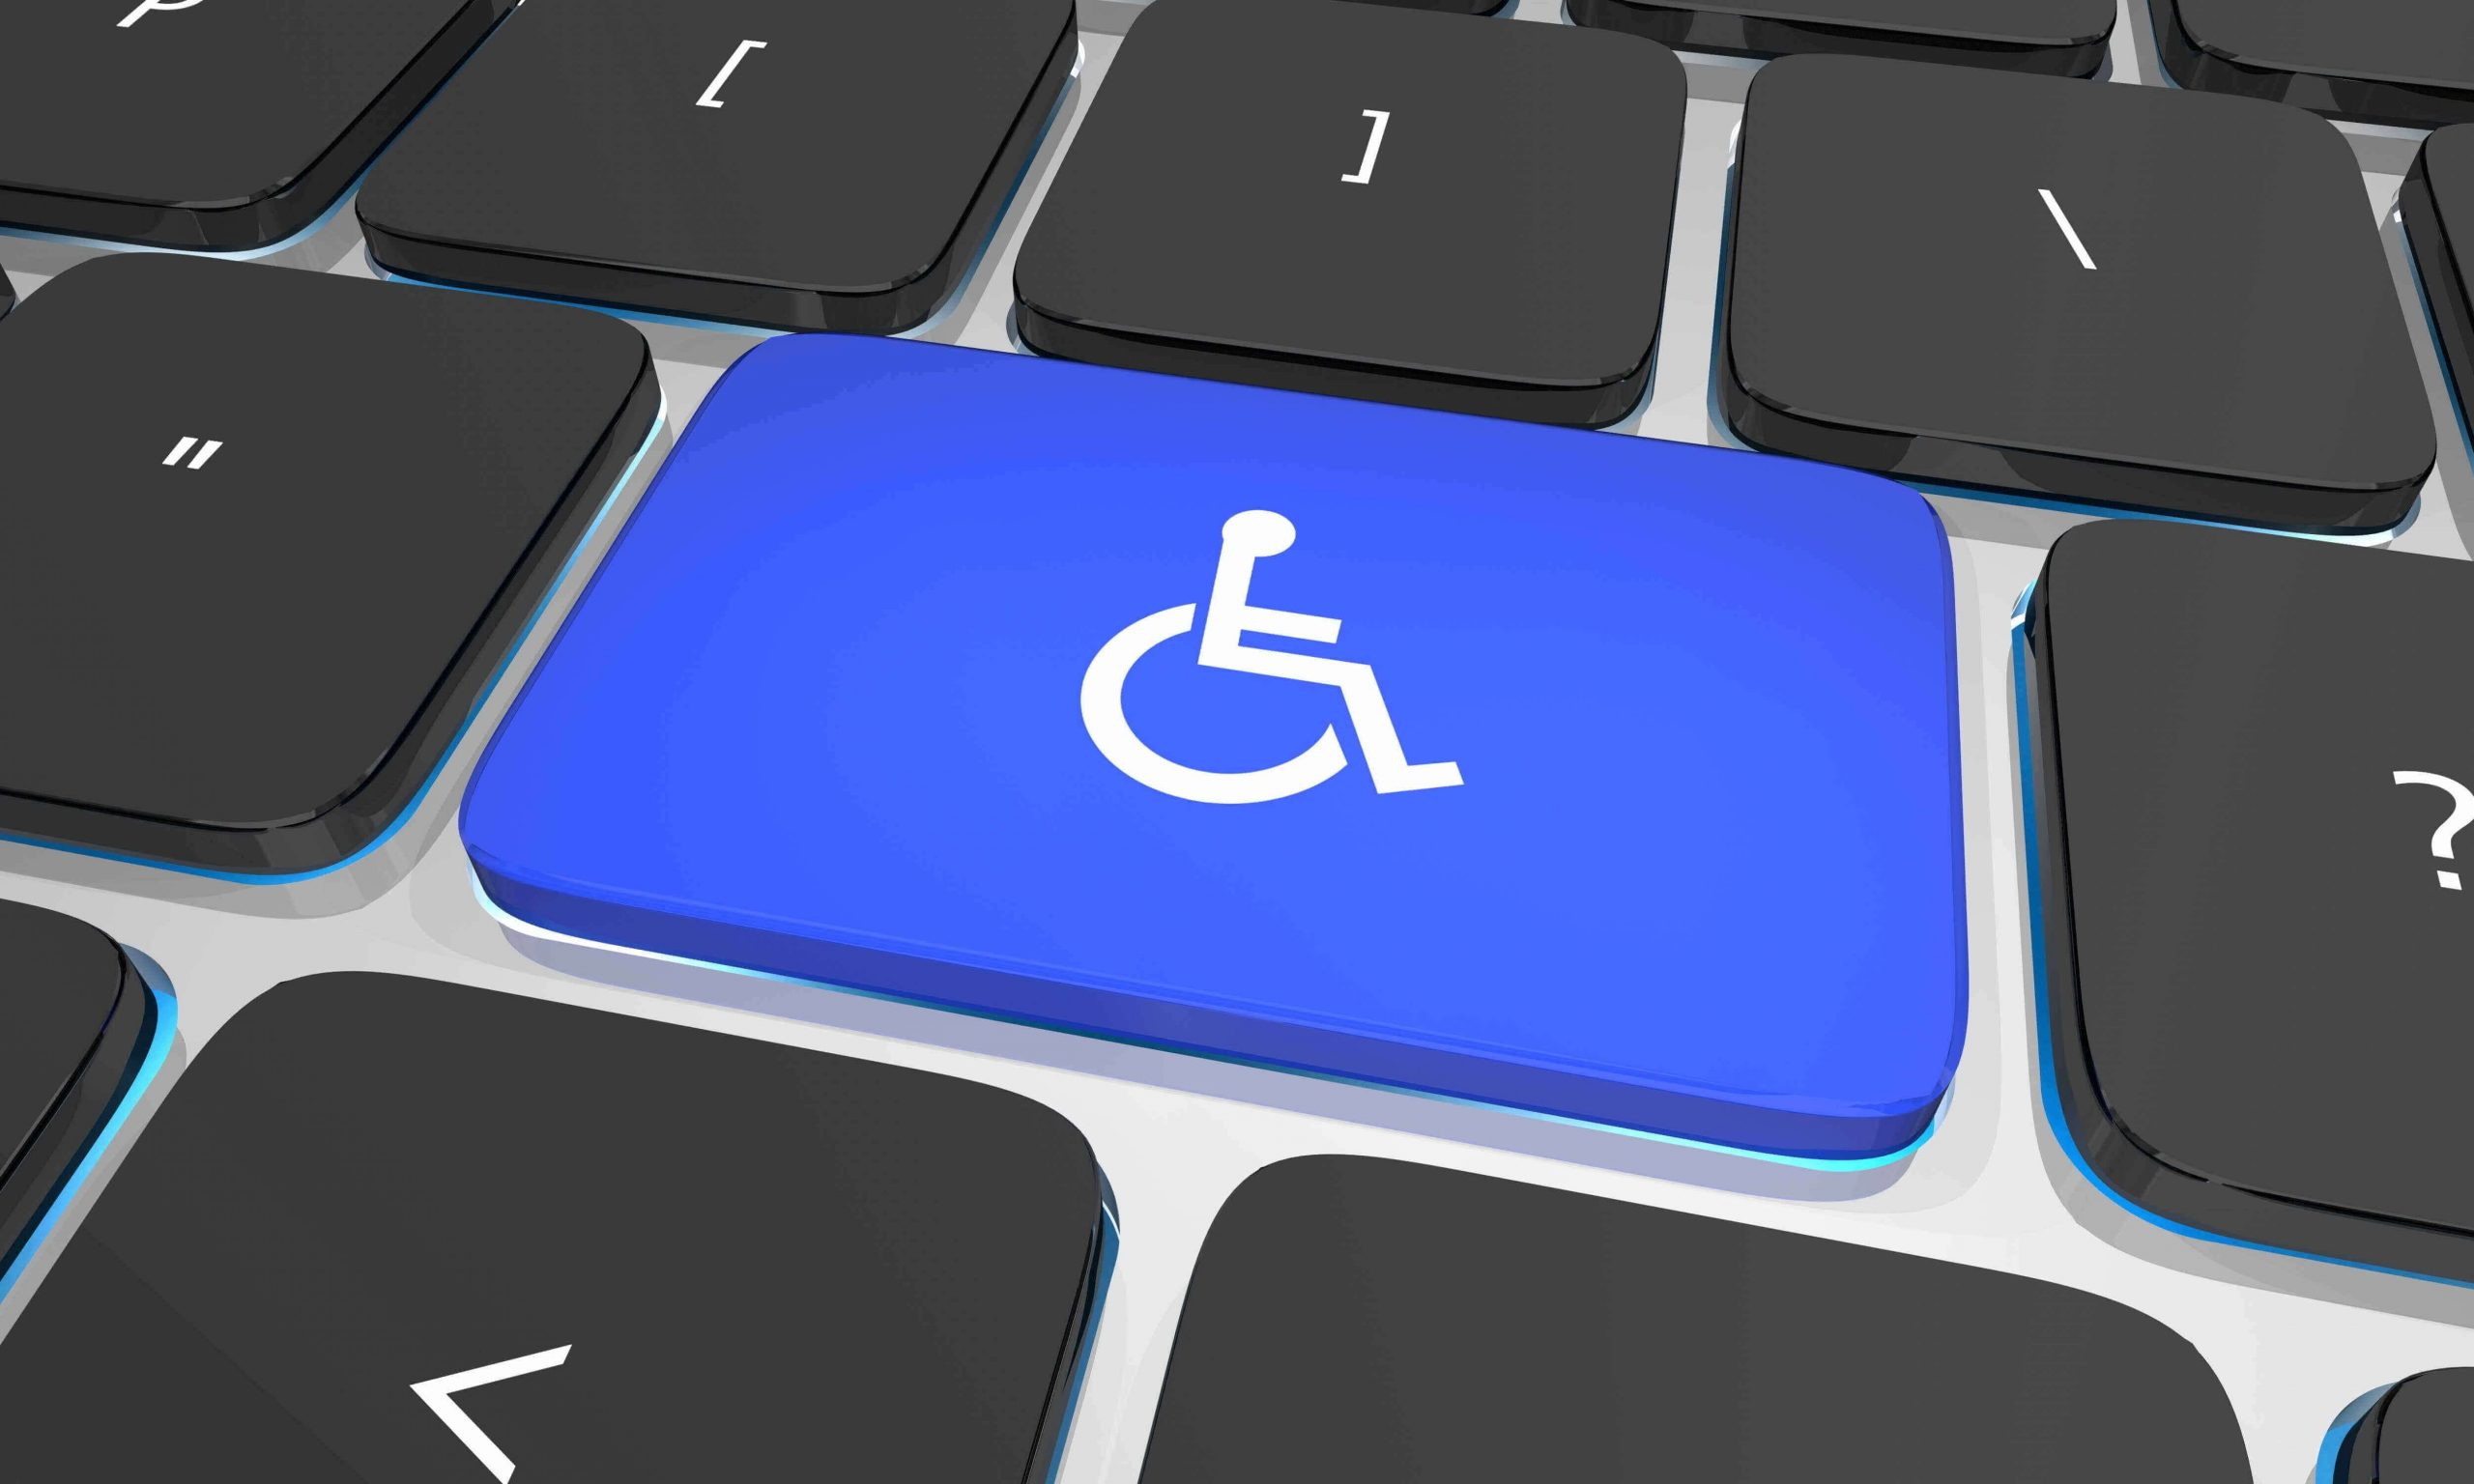 Keyboard computer disability button - Americans Disabilities Act